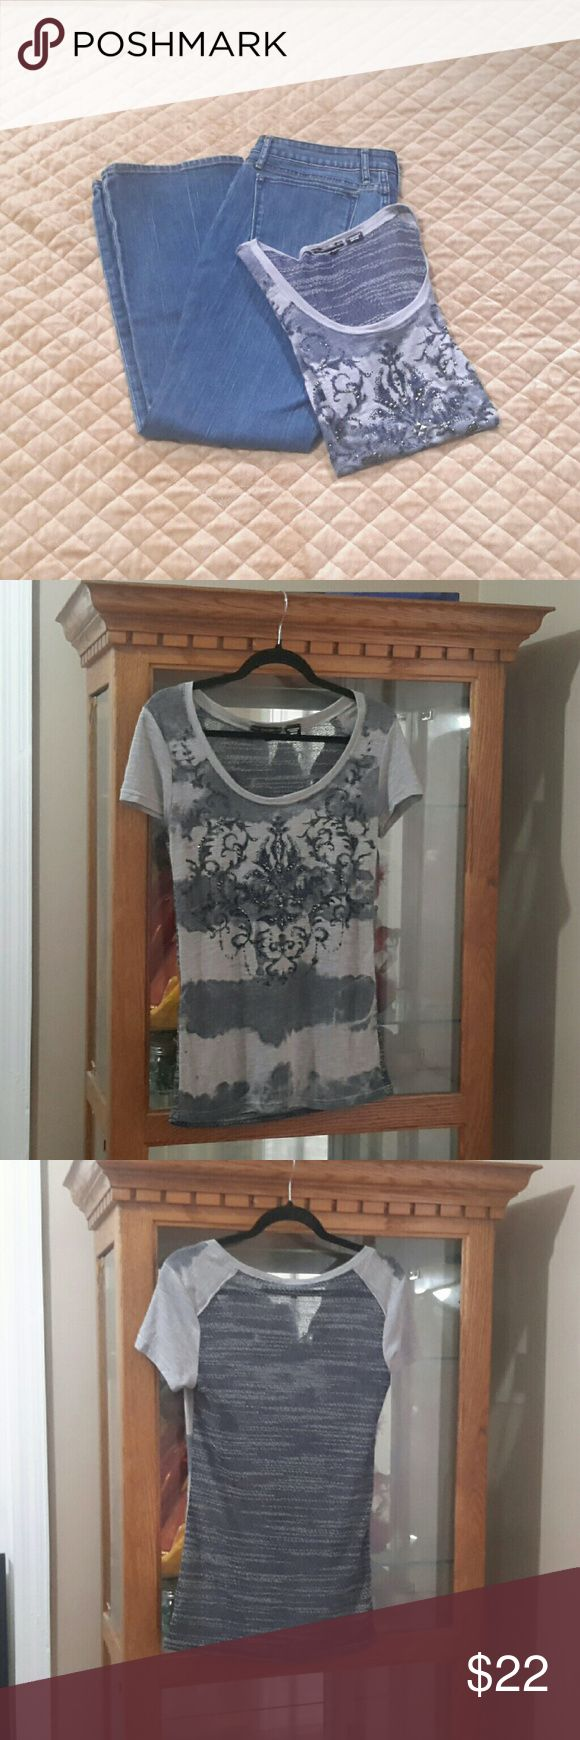 Miss Me Embellished Tshirt - in great used condition - blue & gun metal gray embellishments on front - sheer light & dark gray back - 50% Polyester, 50% Rayon Miss Me Tops Tees - Short Sleeve